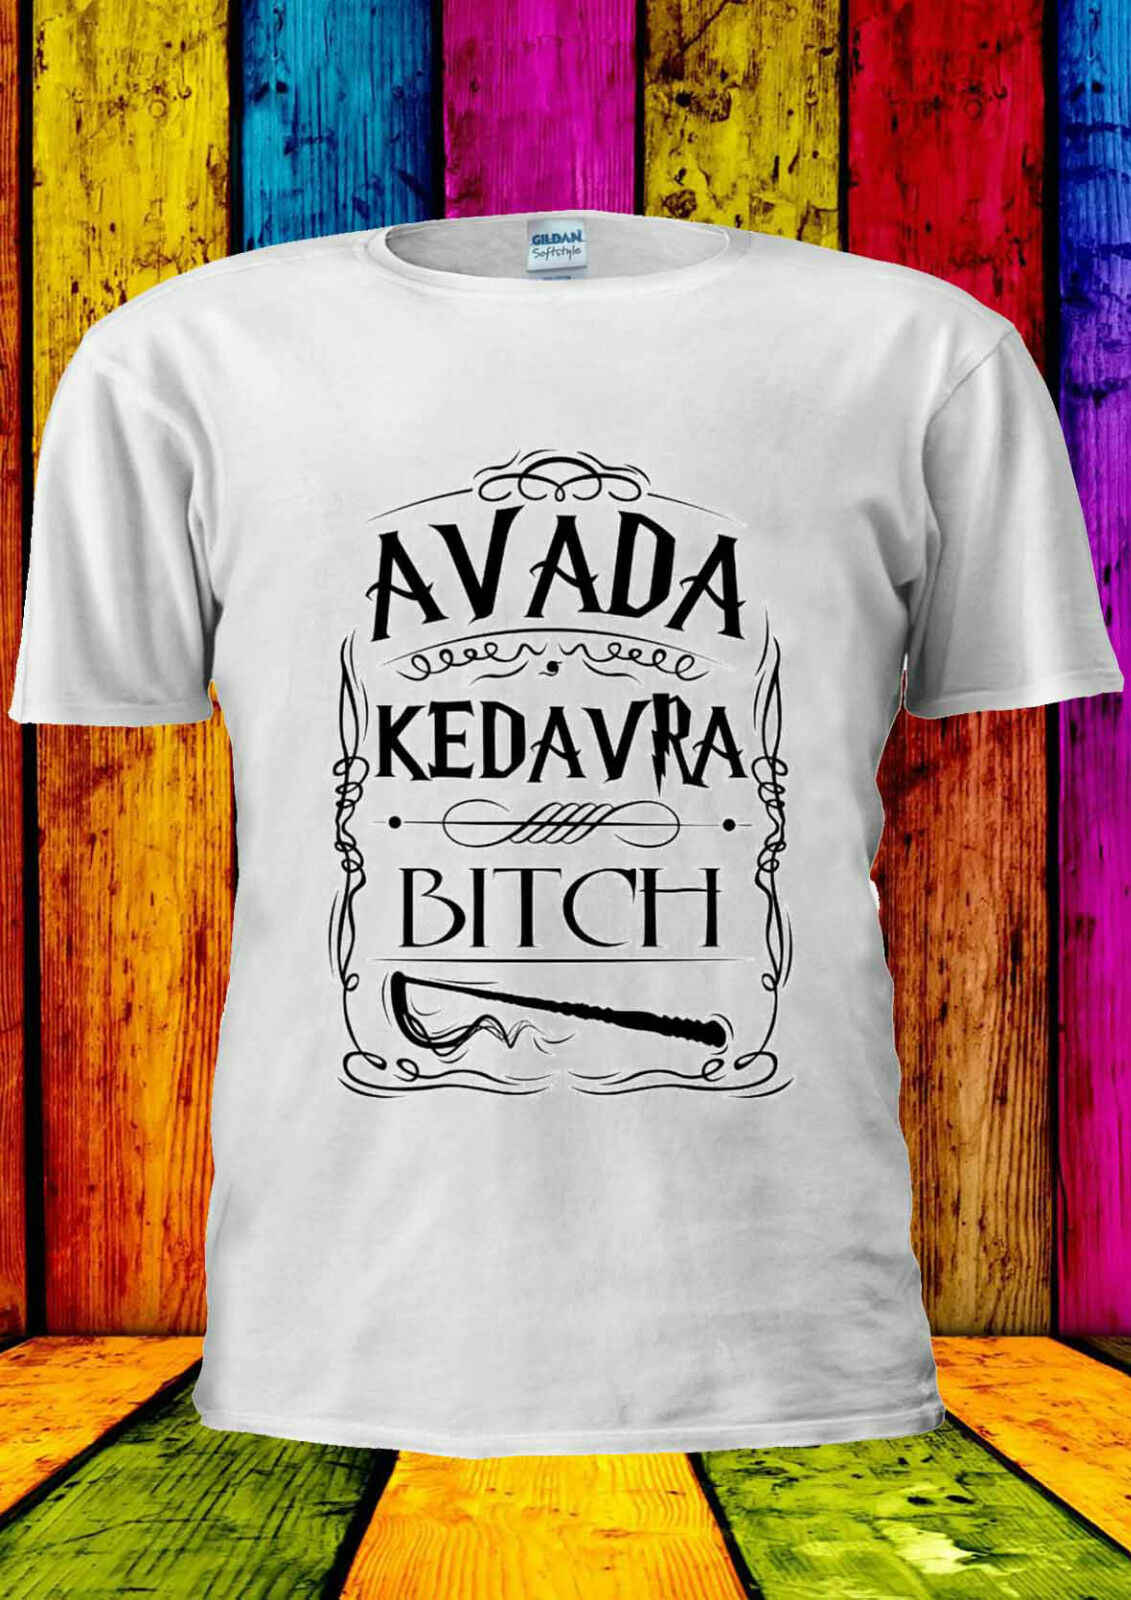 Avada Kedavra B*tch Funny HP Cool T-shirt Vest  Men Women Unisex 2108 Gift Print T-shirt,Hip Hop Tee Shirt,2019 hot tees